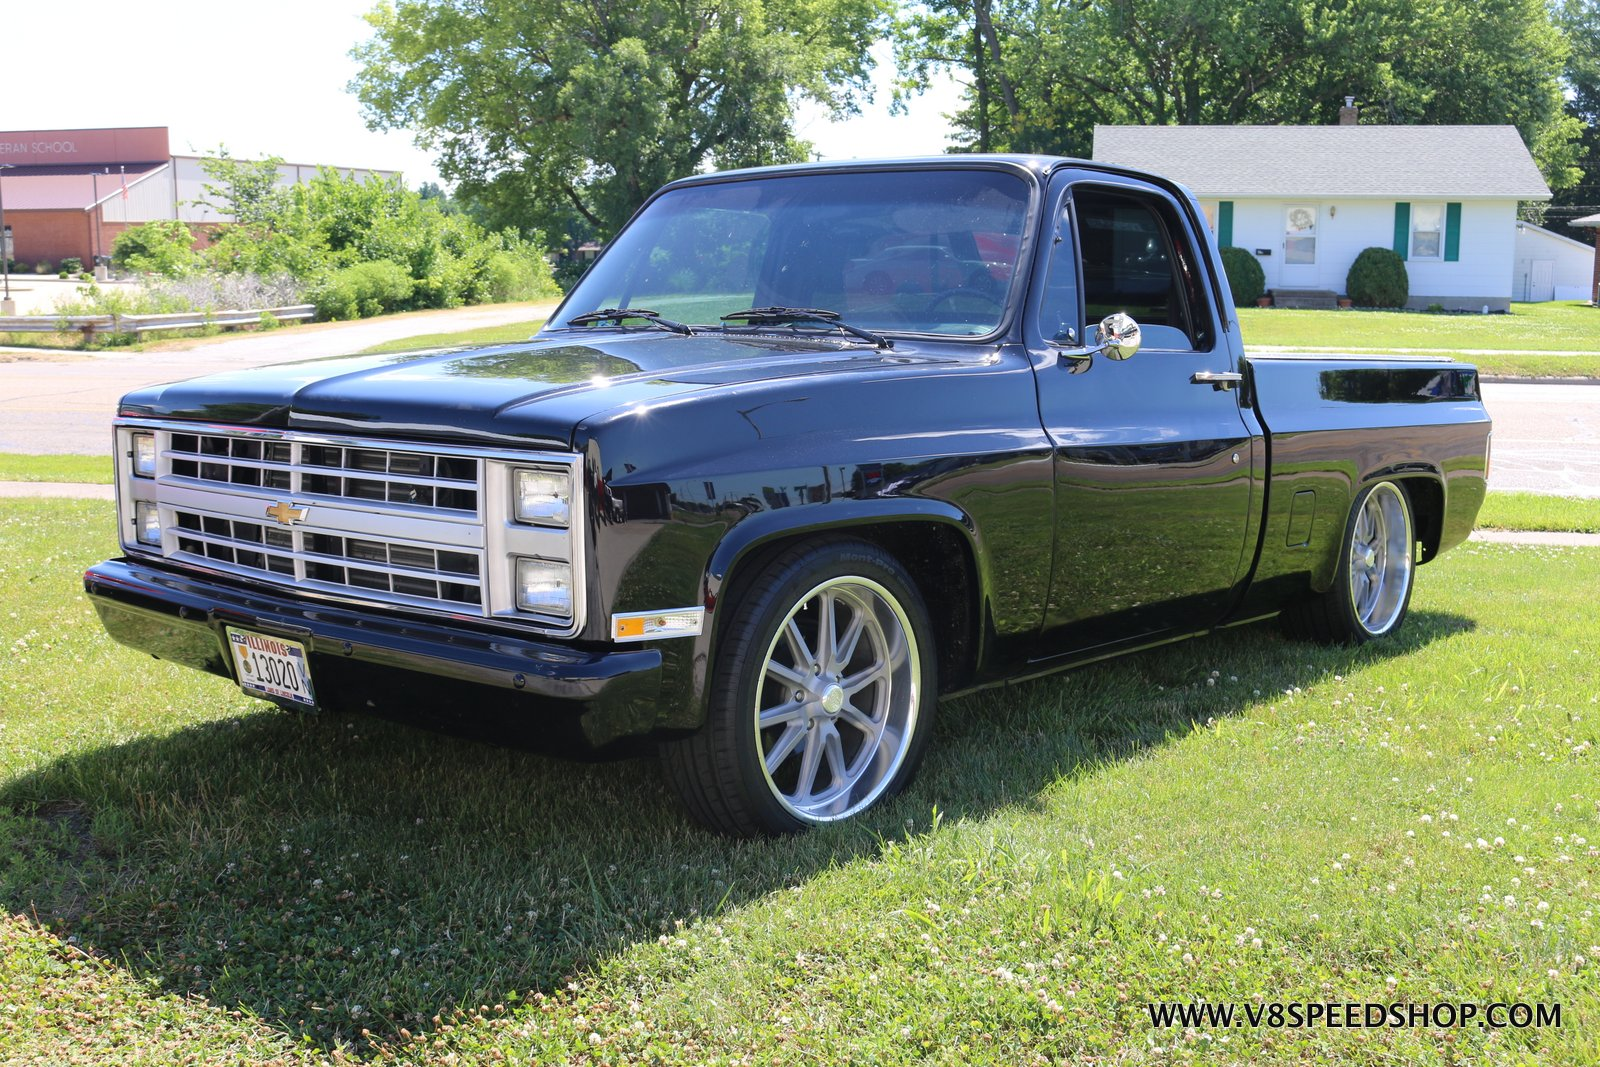 1985 Chevrolet C10 Pickup Maintenance and Completion at V8 Speed & Resto Shop